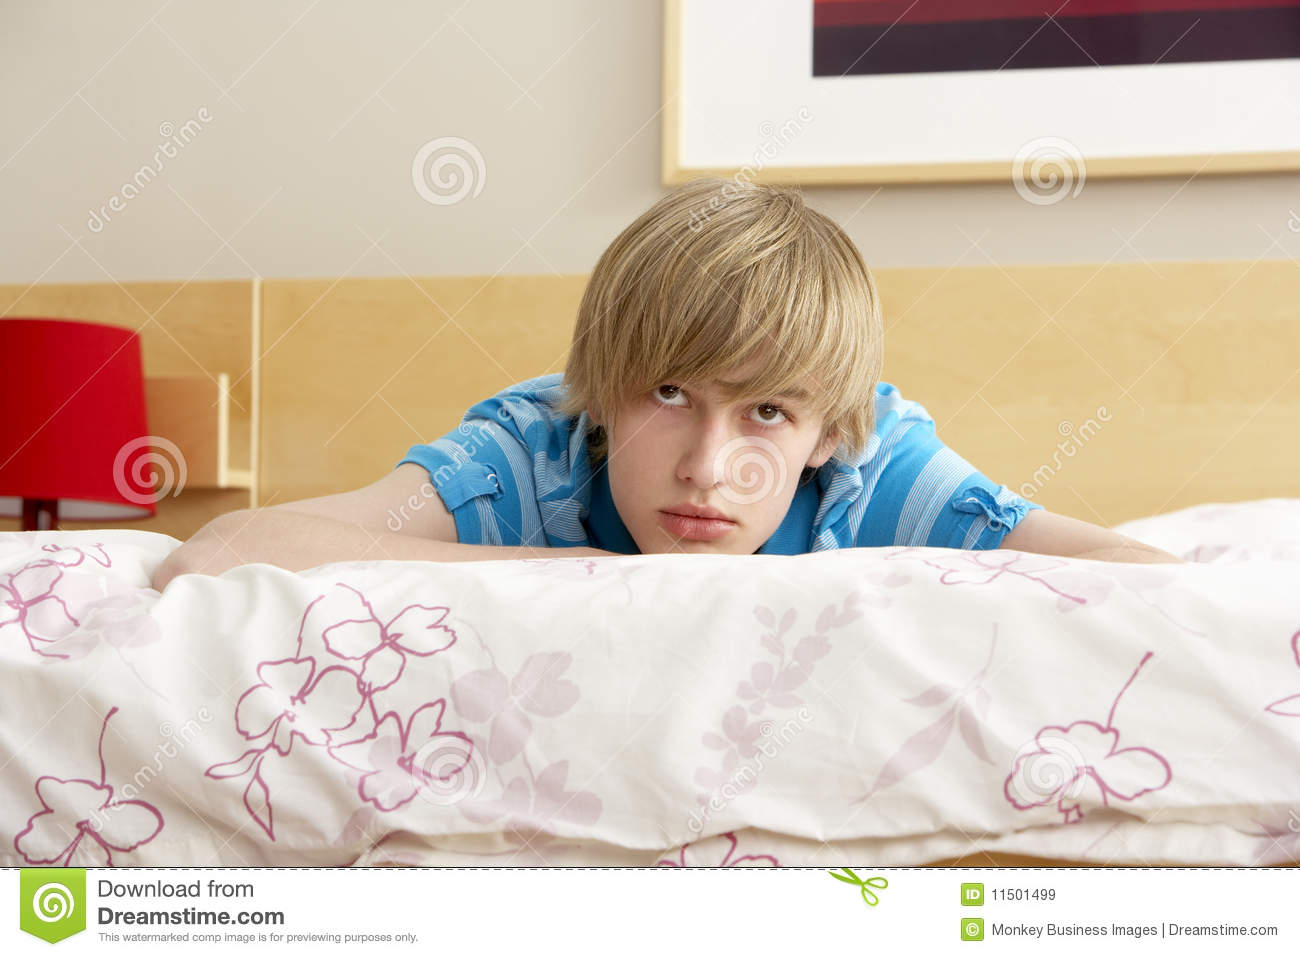 Teenage Boy In Bedroom Looking Sad